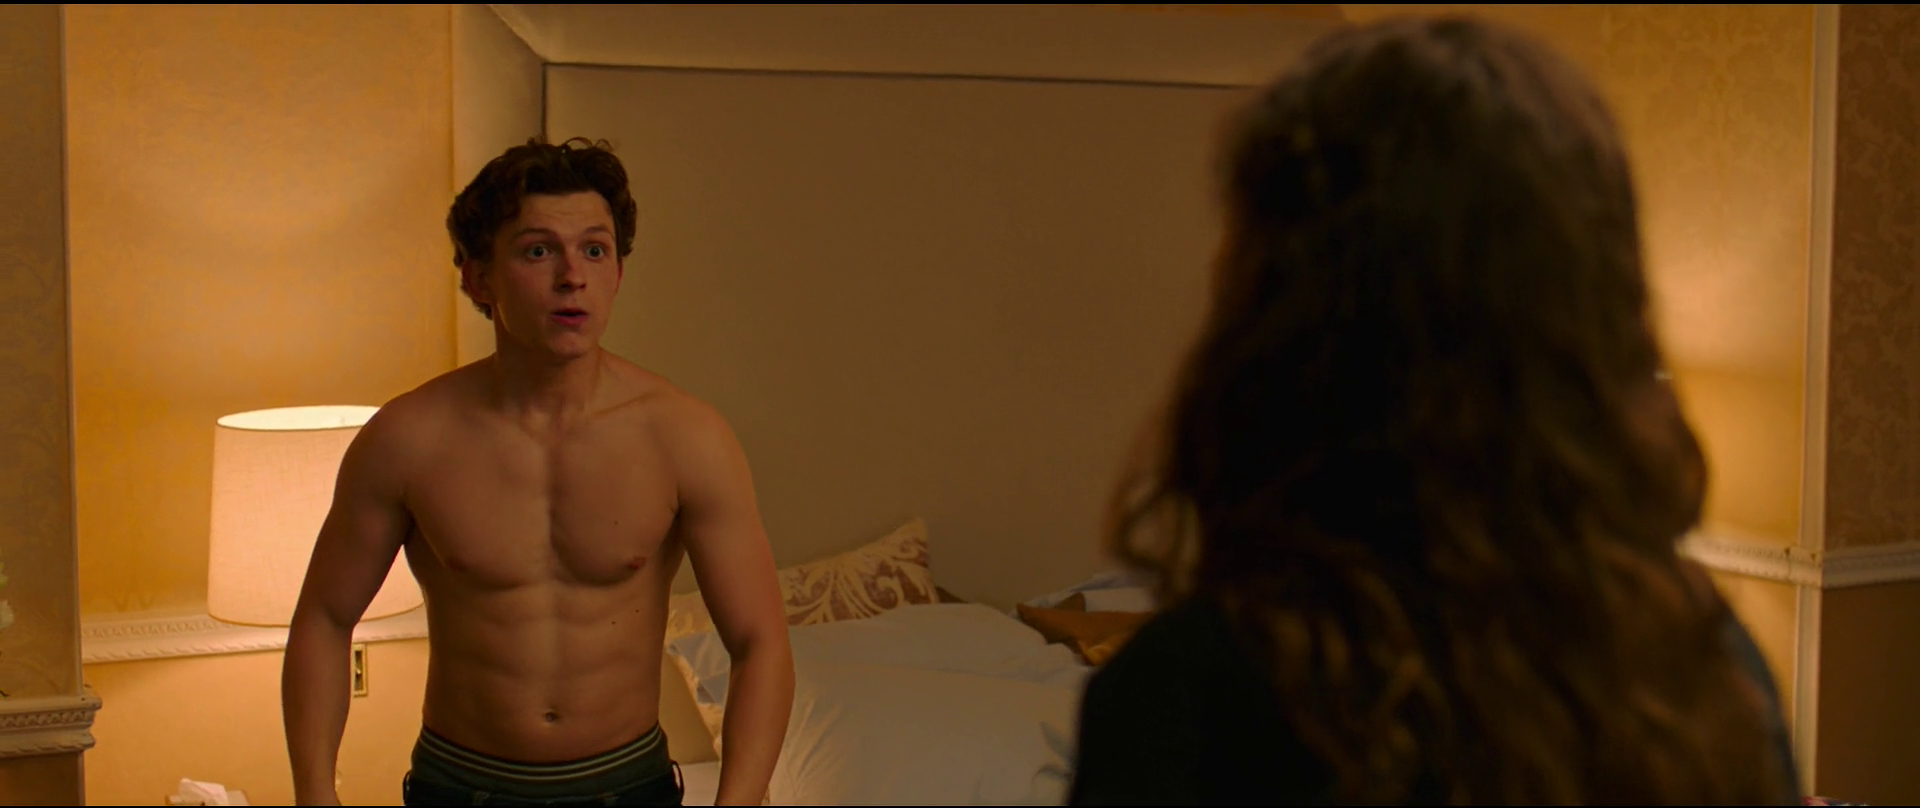 Tom Holland as Peter Parker/Spider-Man shirtless in Spider-Man: Homecoming